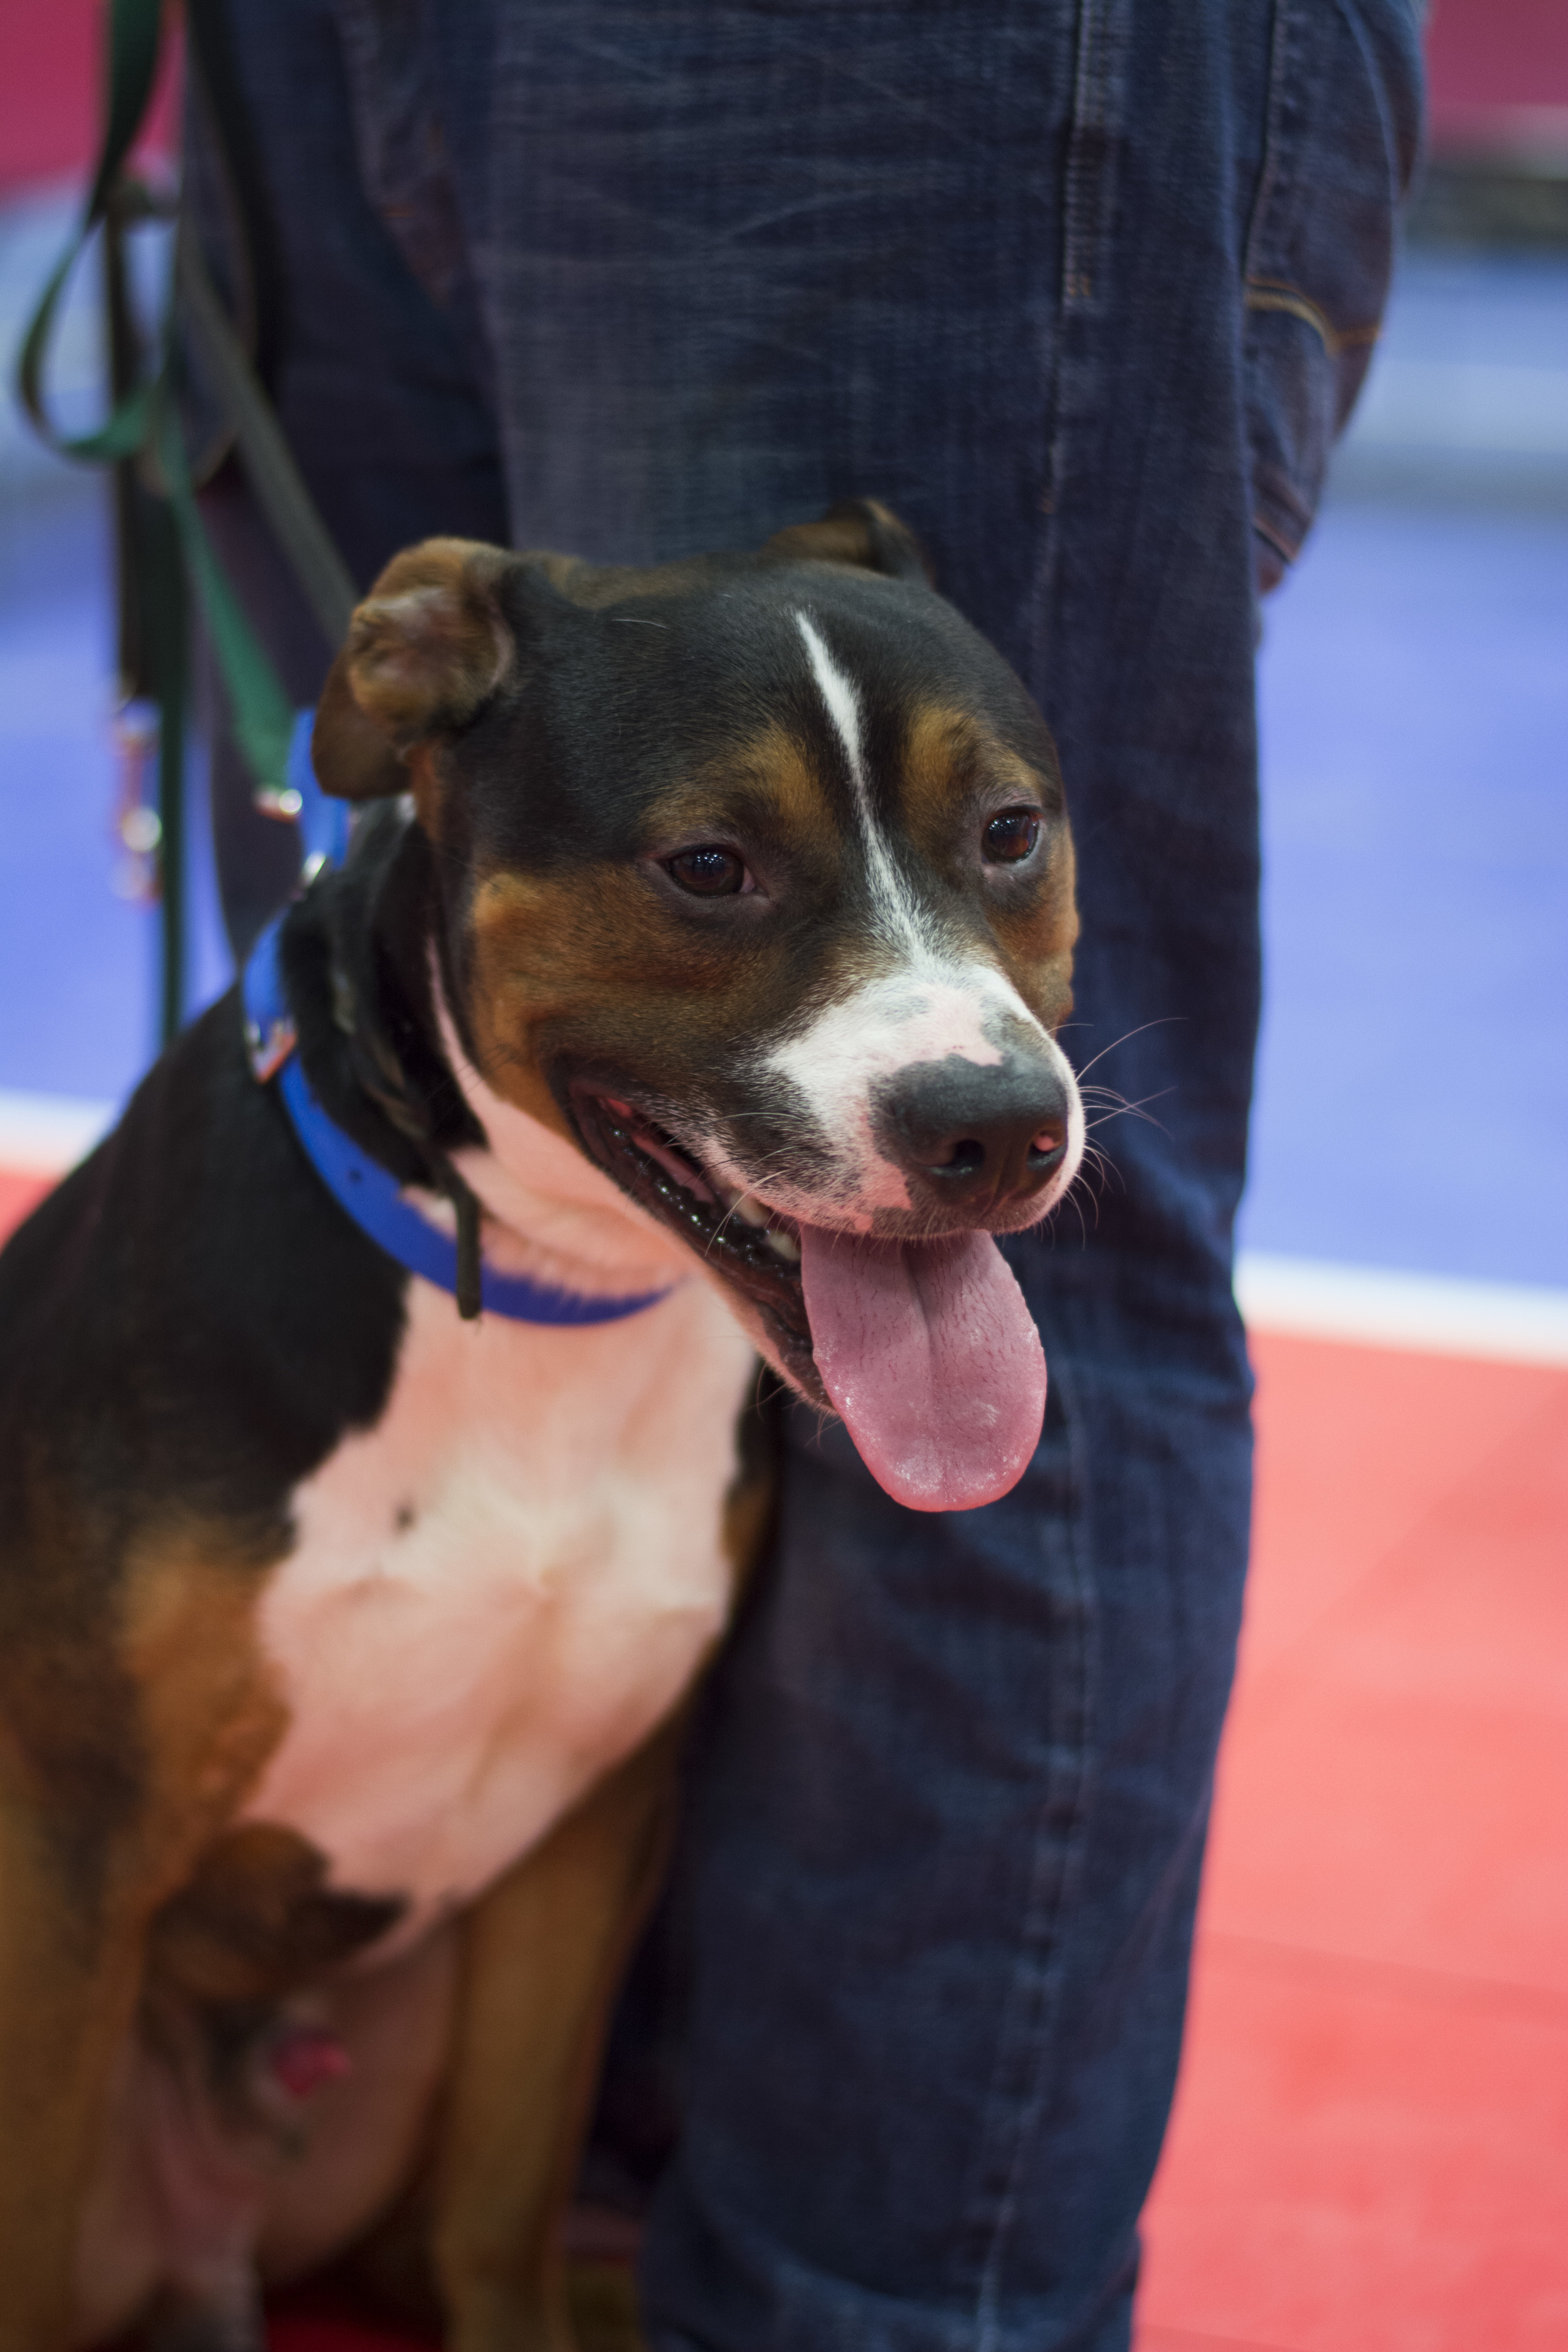 Finley an adorable mutt looking for a forever home!